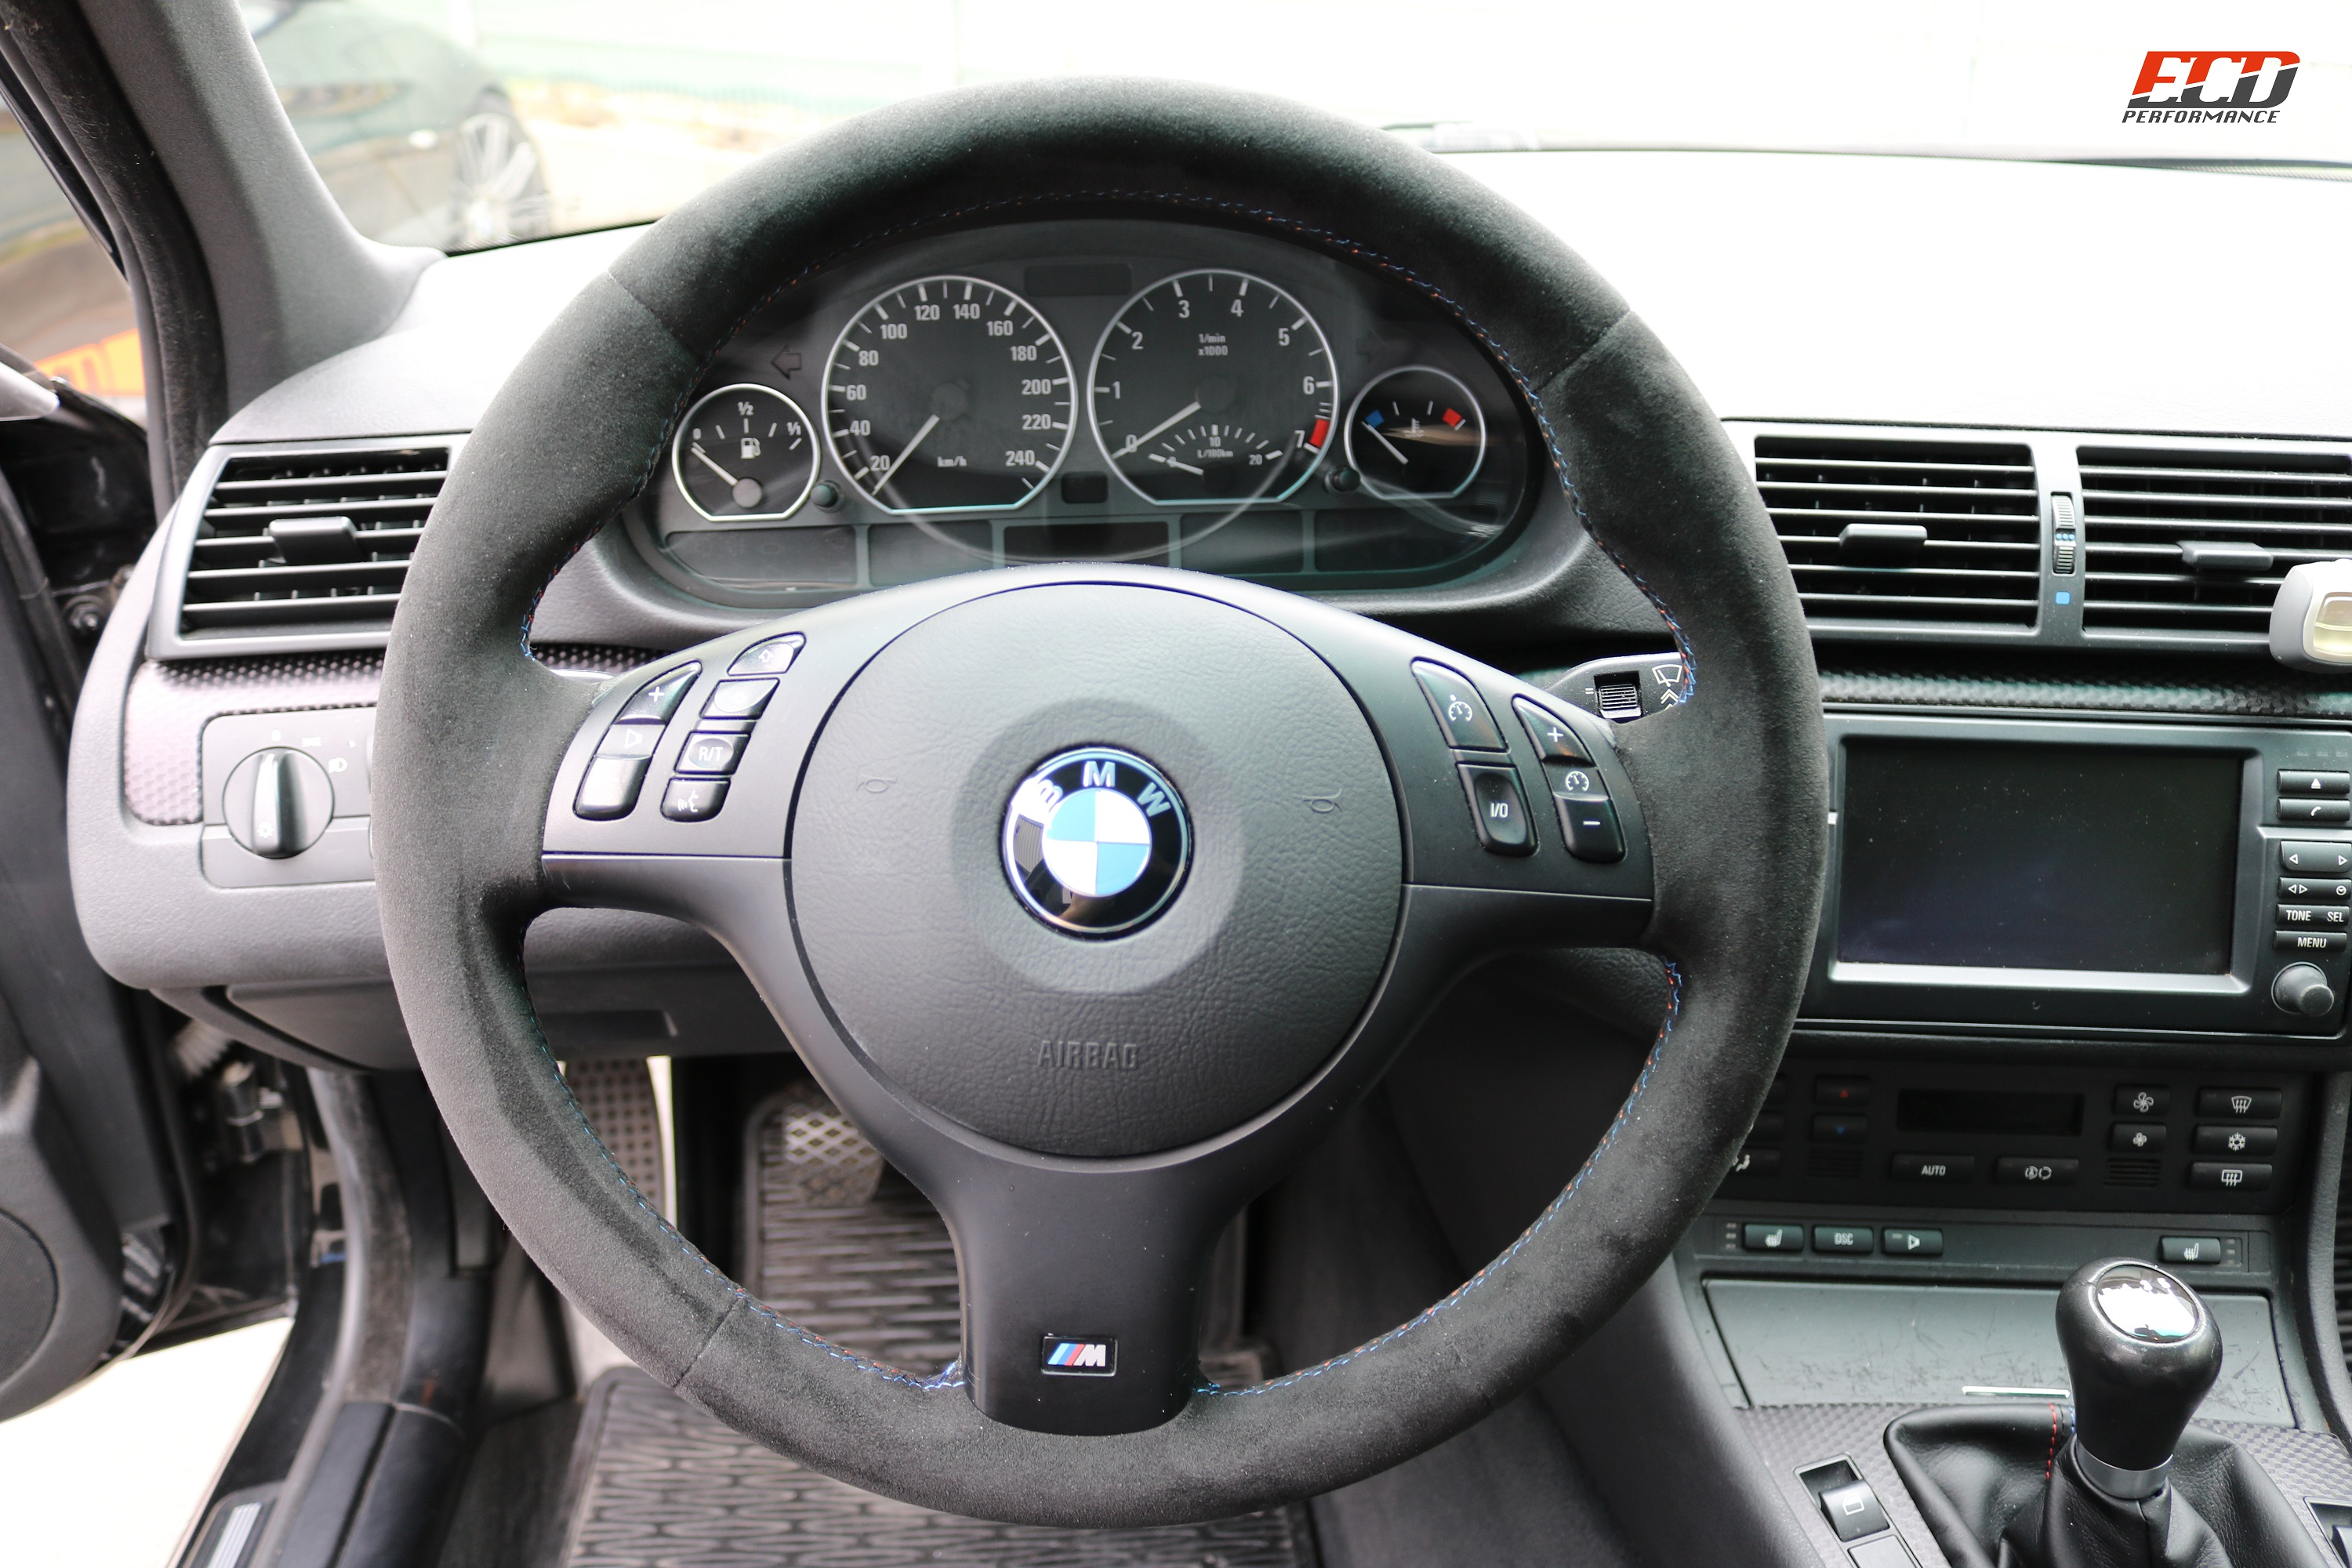 Steering Wheel New Bmw E46 Alcantara Desired Color 12 O Clock Position Without Upholstery My Parts For Finishing Ecd Lv E46 1